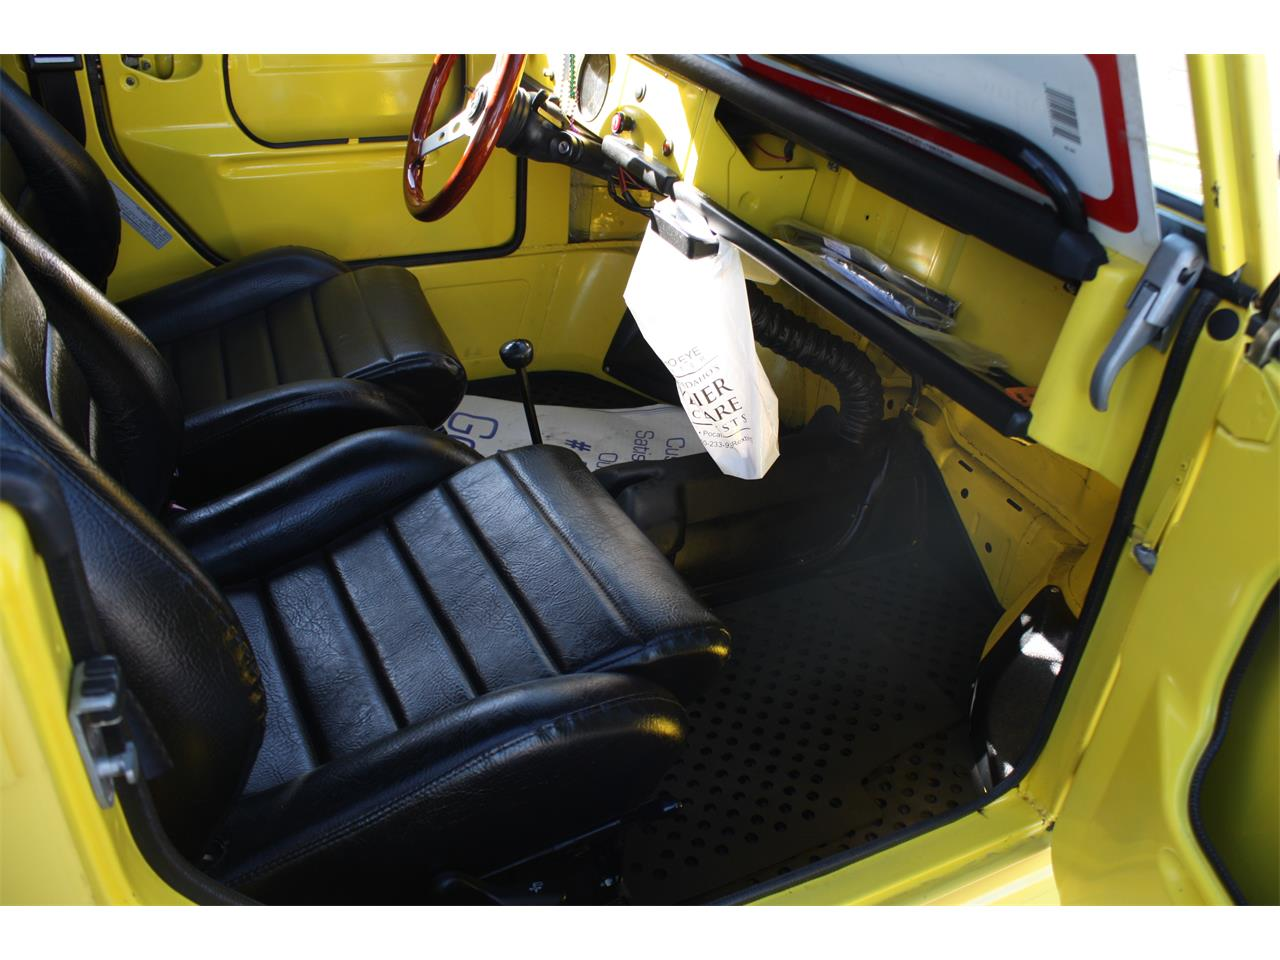 1974 Volkswagen Thing (CC-1295912) for sale in Blackfoot, Idaho